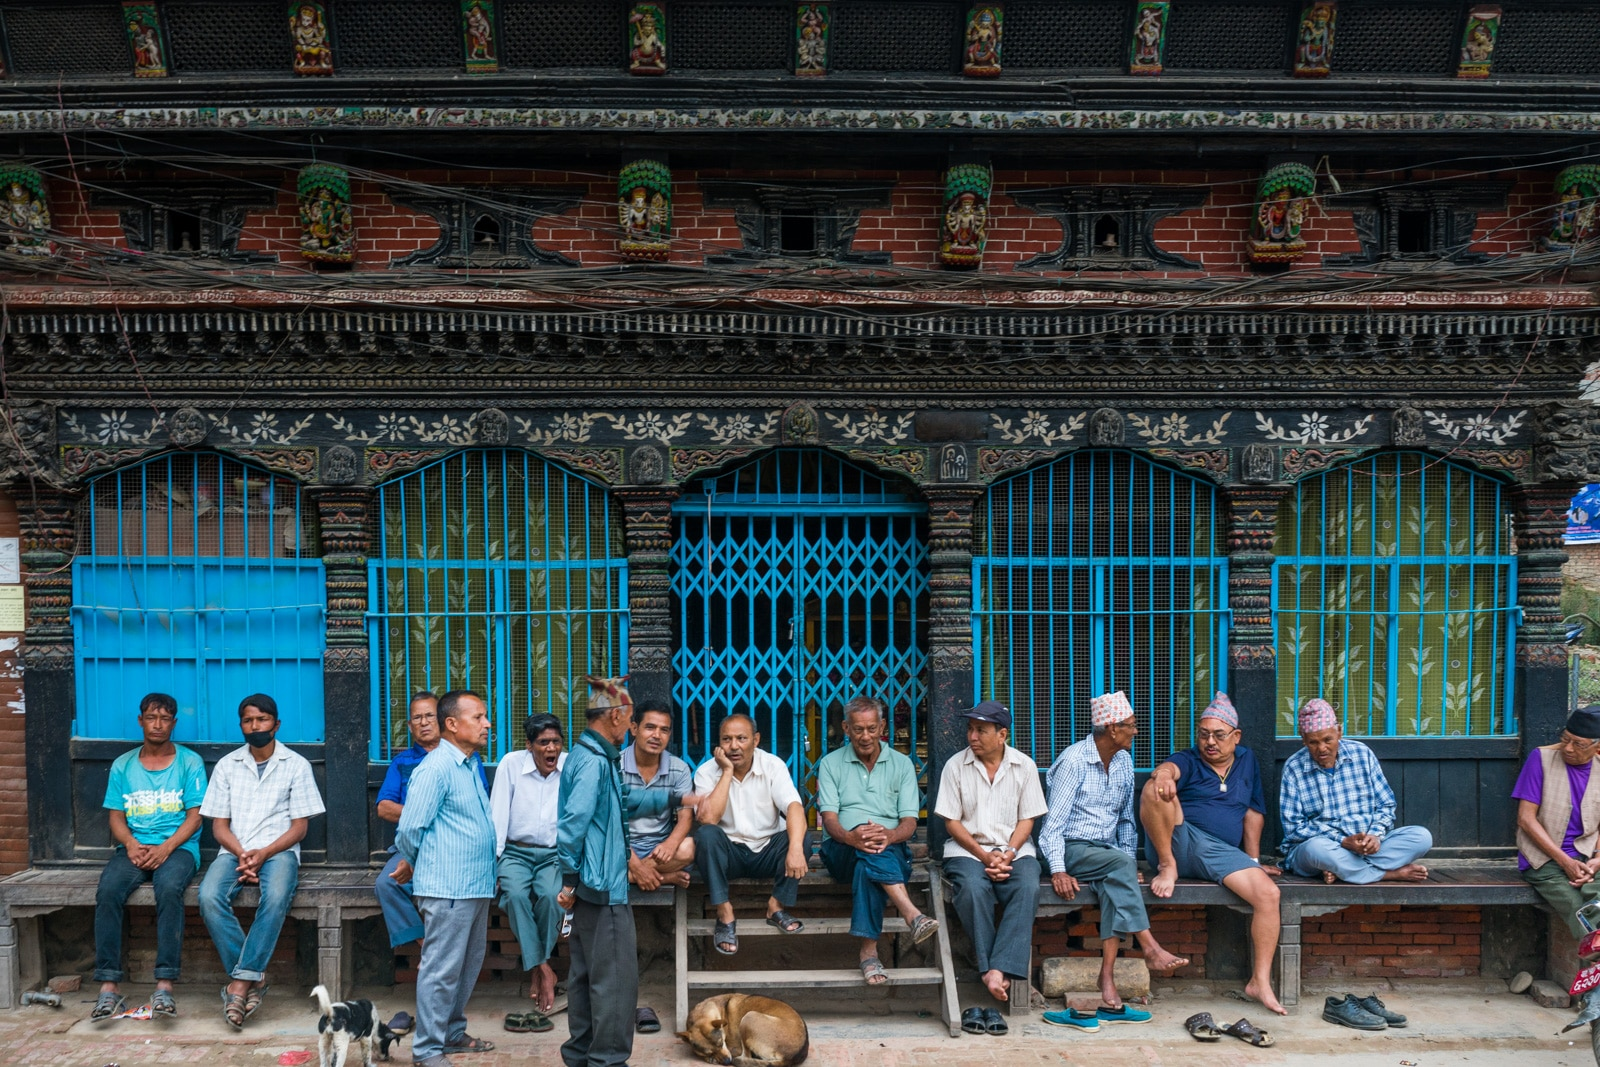 Traveling in Patan, Nepal during monsoon - Men chilling on the streets of Patan - Lost With Purpose travel blog